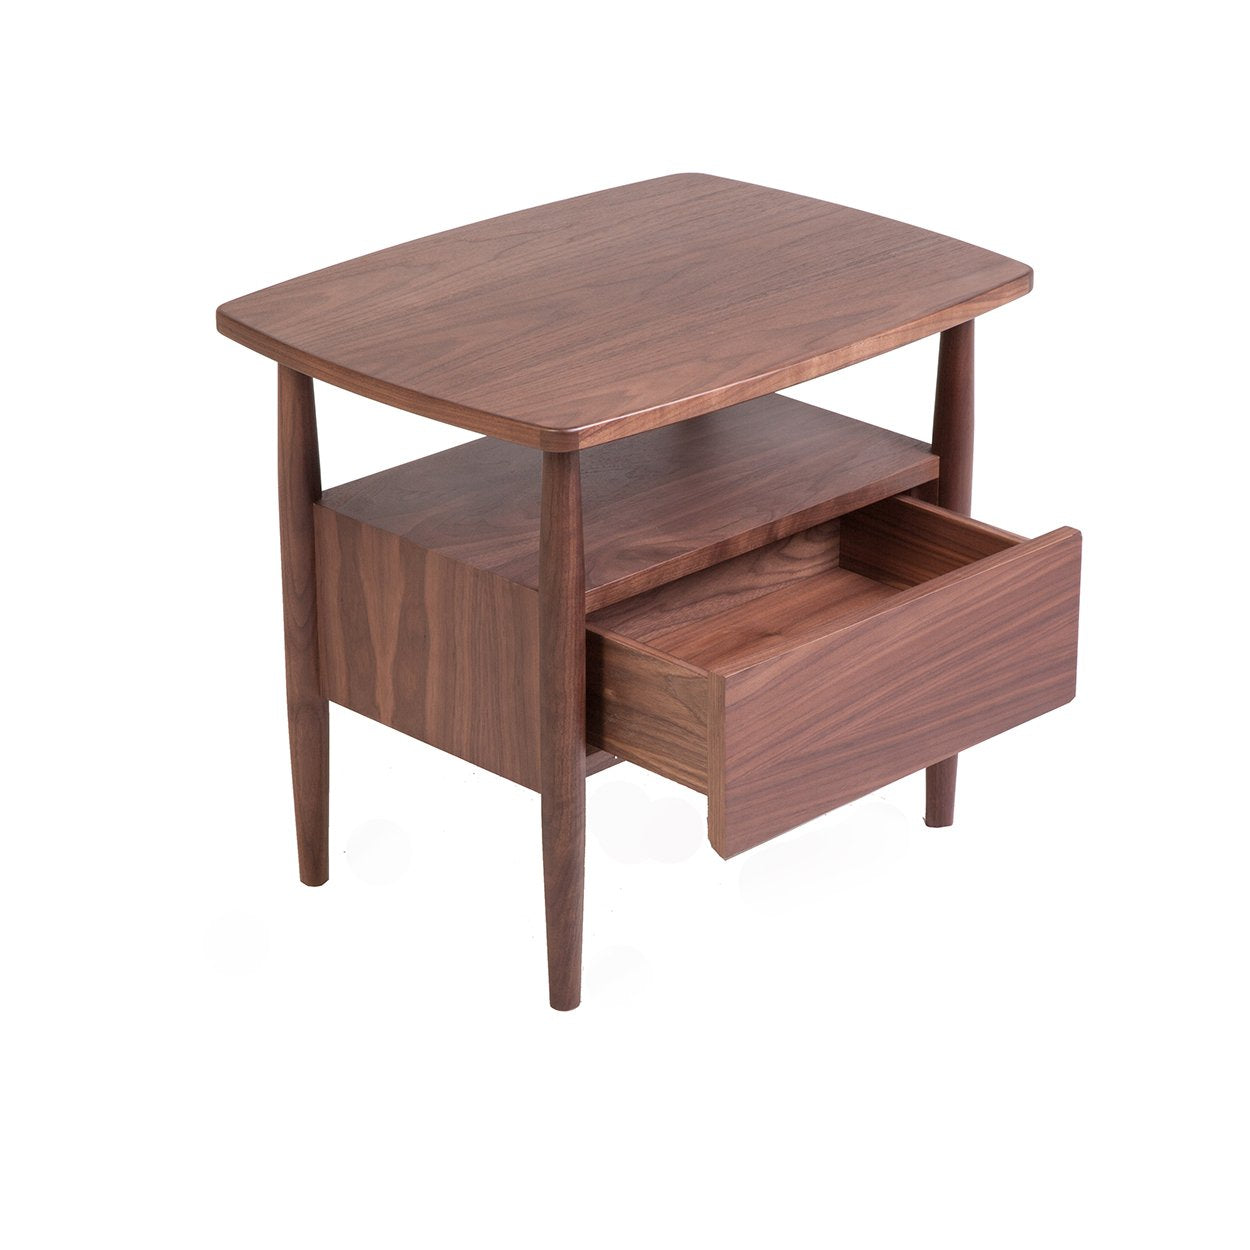 [FES0225WALNUT] Darwin side table